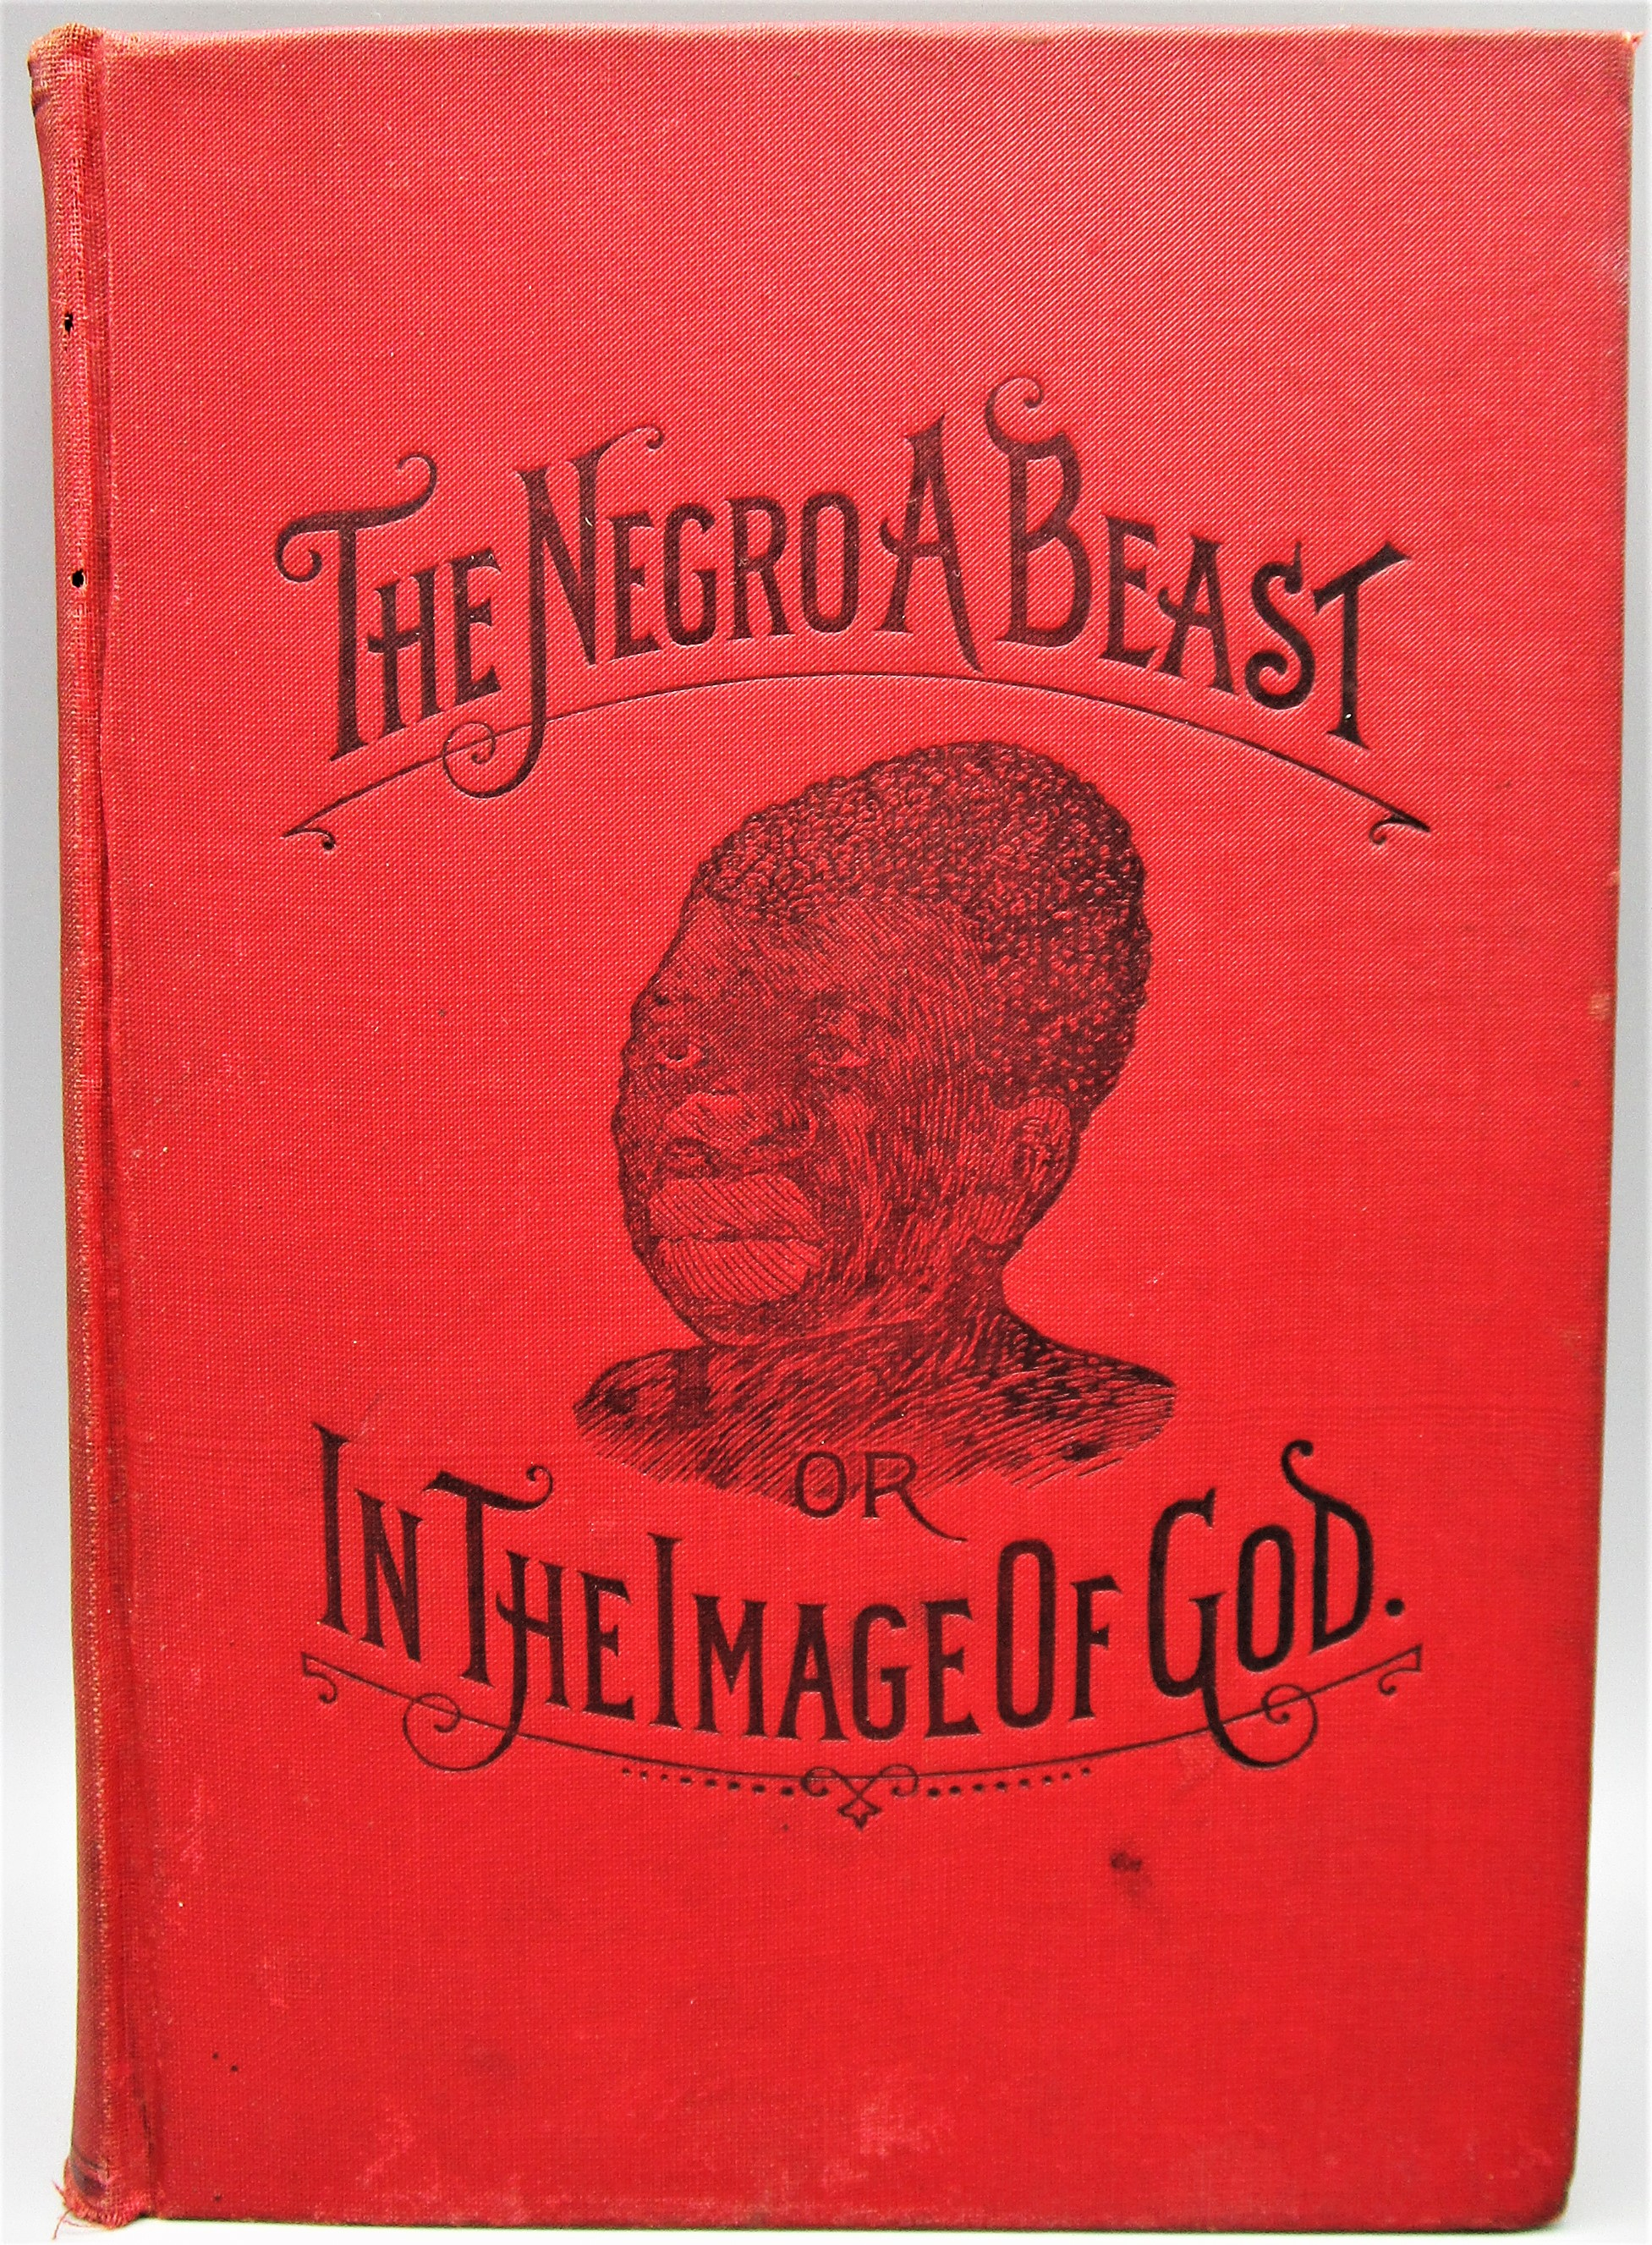 THE NEGRO A BEAST, OR IN THE IMAGE OF GOD, by Charles Carroll - 1900 [1st Ed]